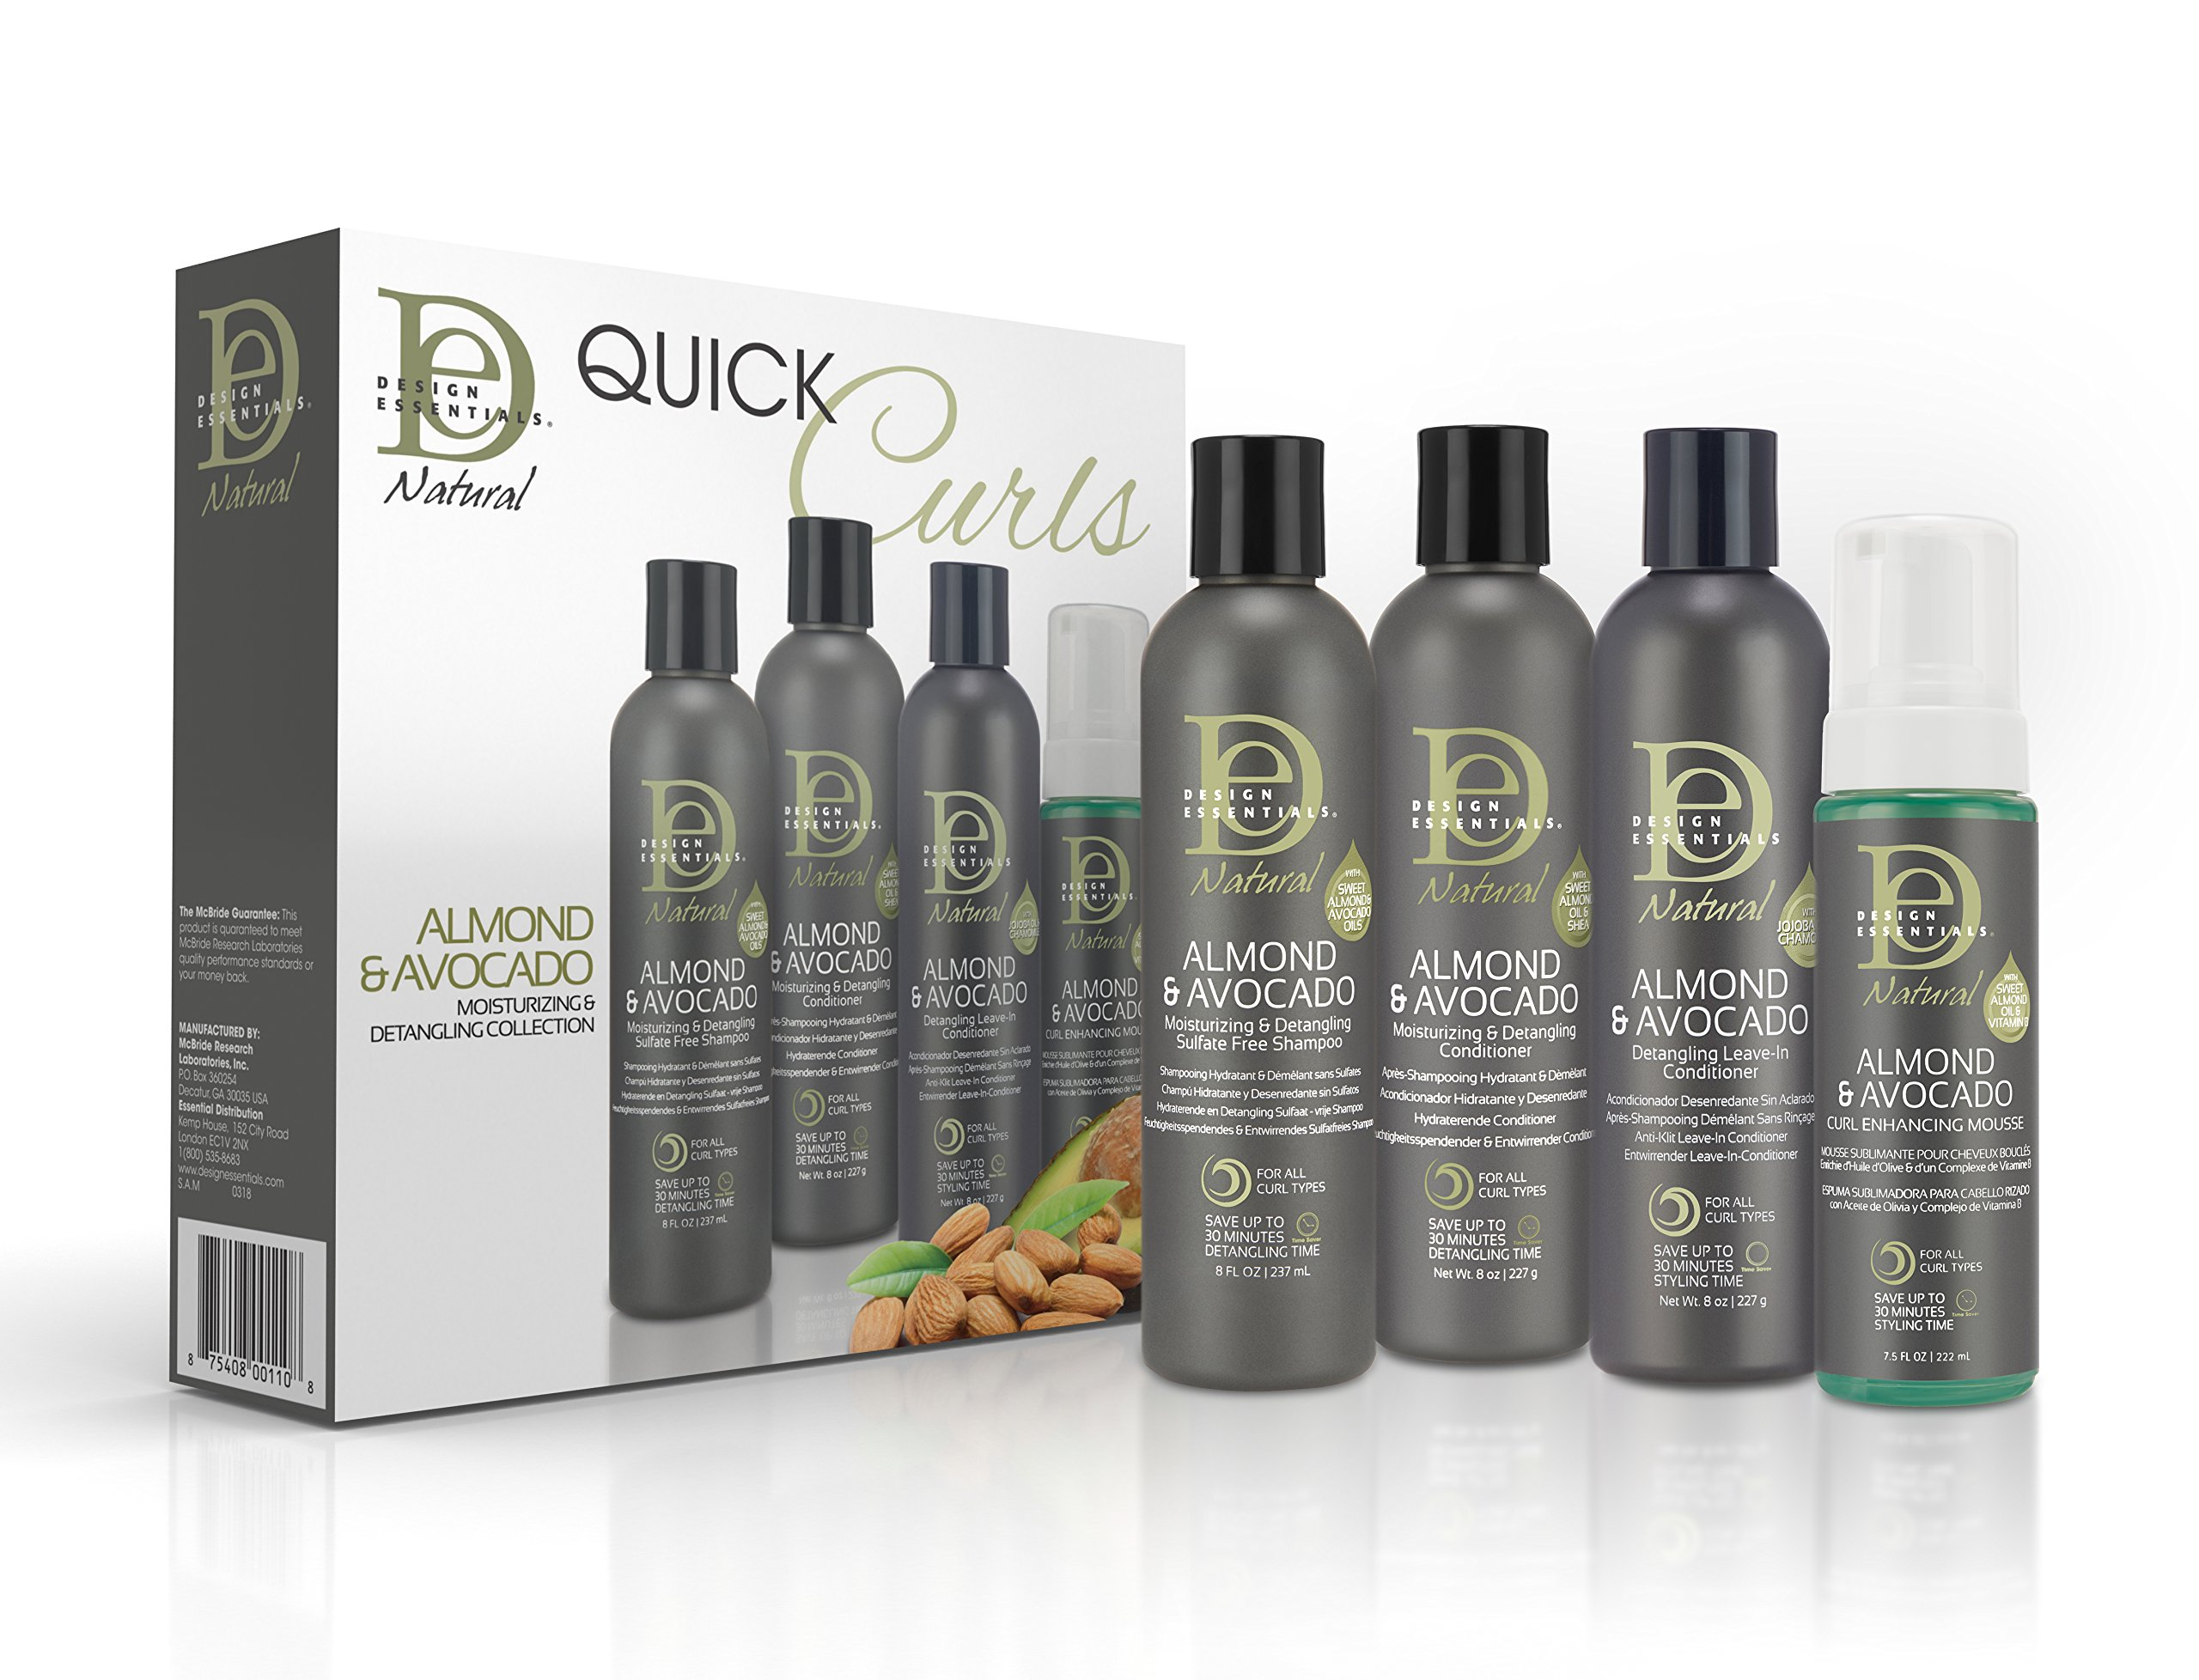 Design Essentials Natural Almond Avocado Quick Curls Box Exclusive